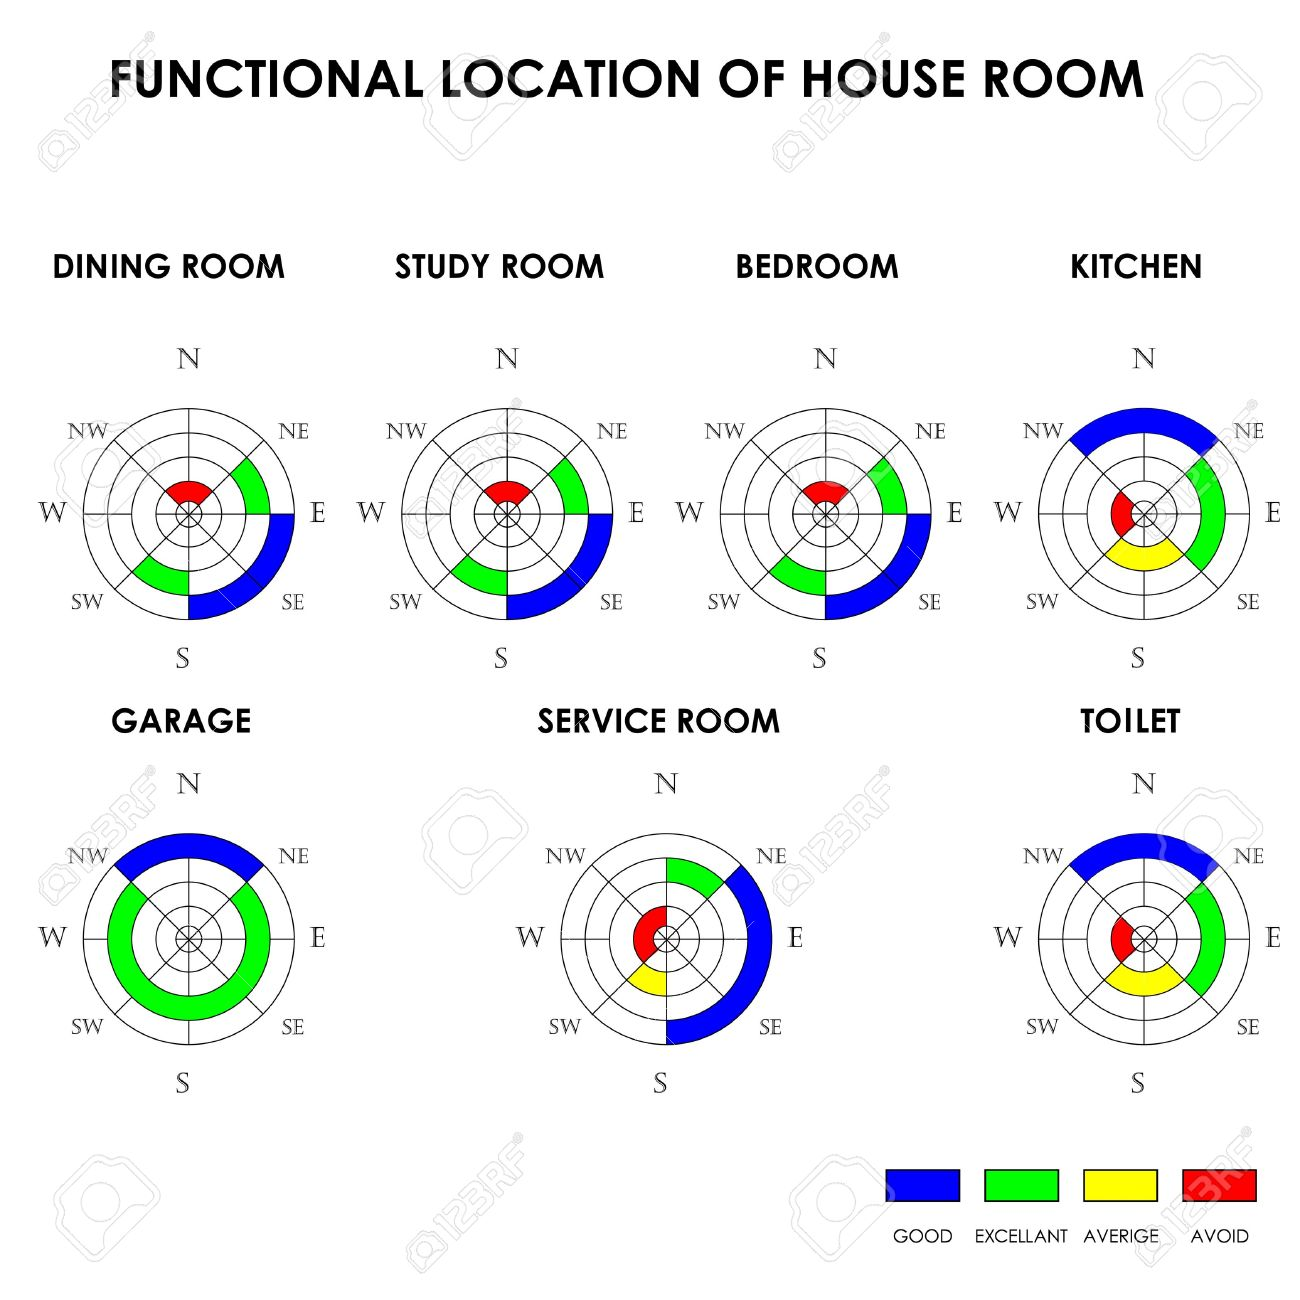 functional location of house room feng shui royalty free cliparts functional location of house room feng shui stock vector 19749004